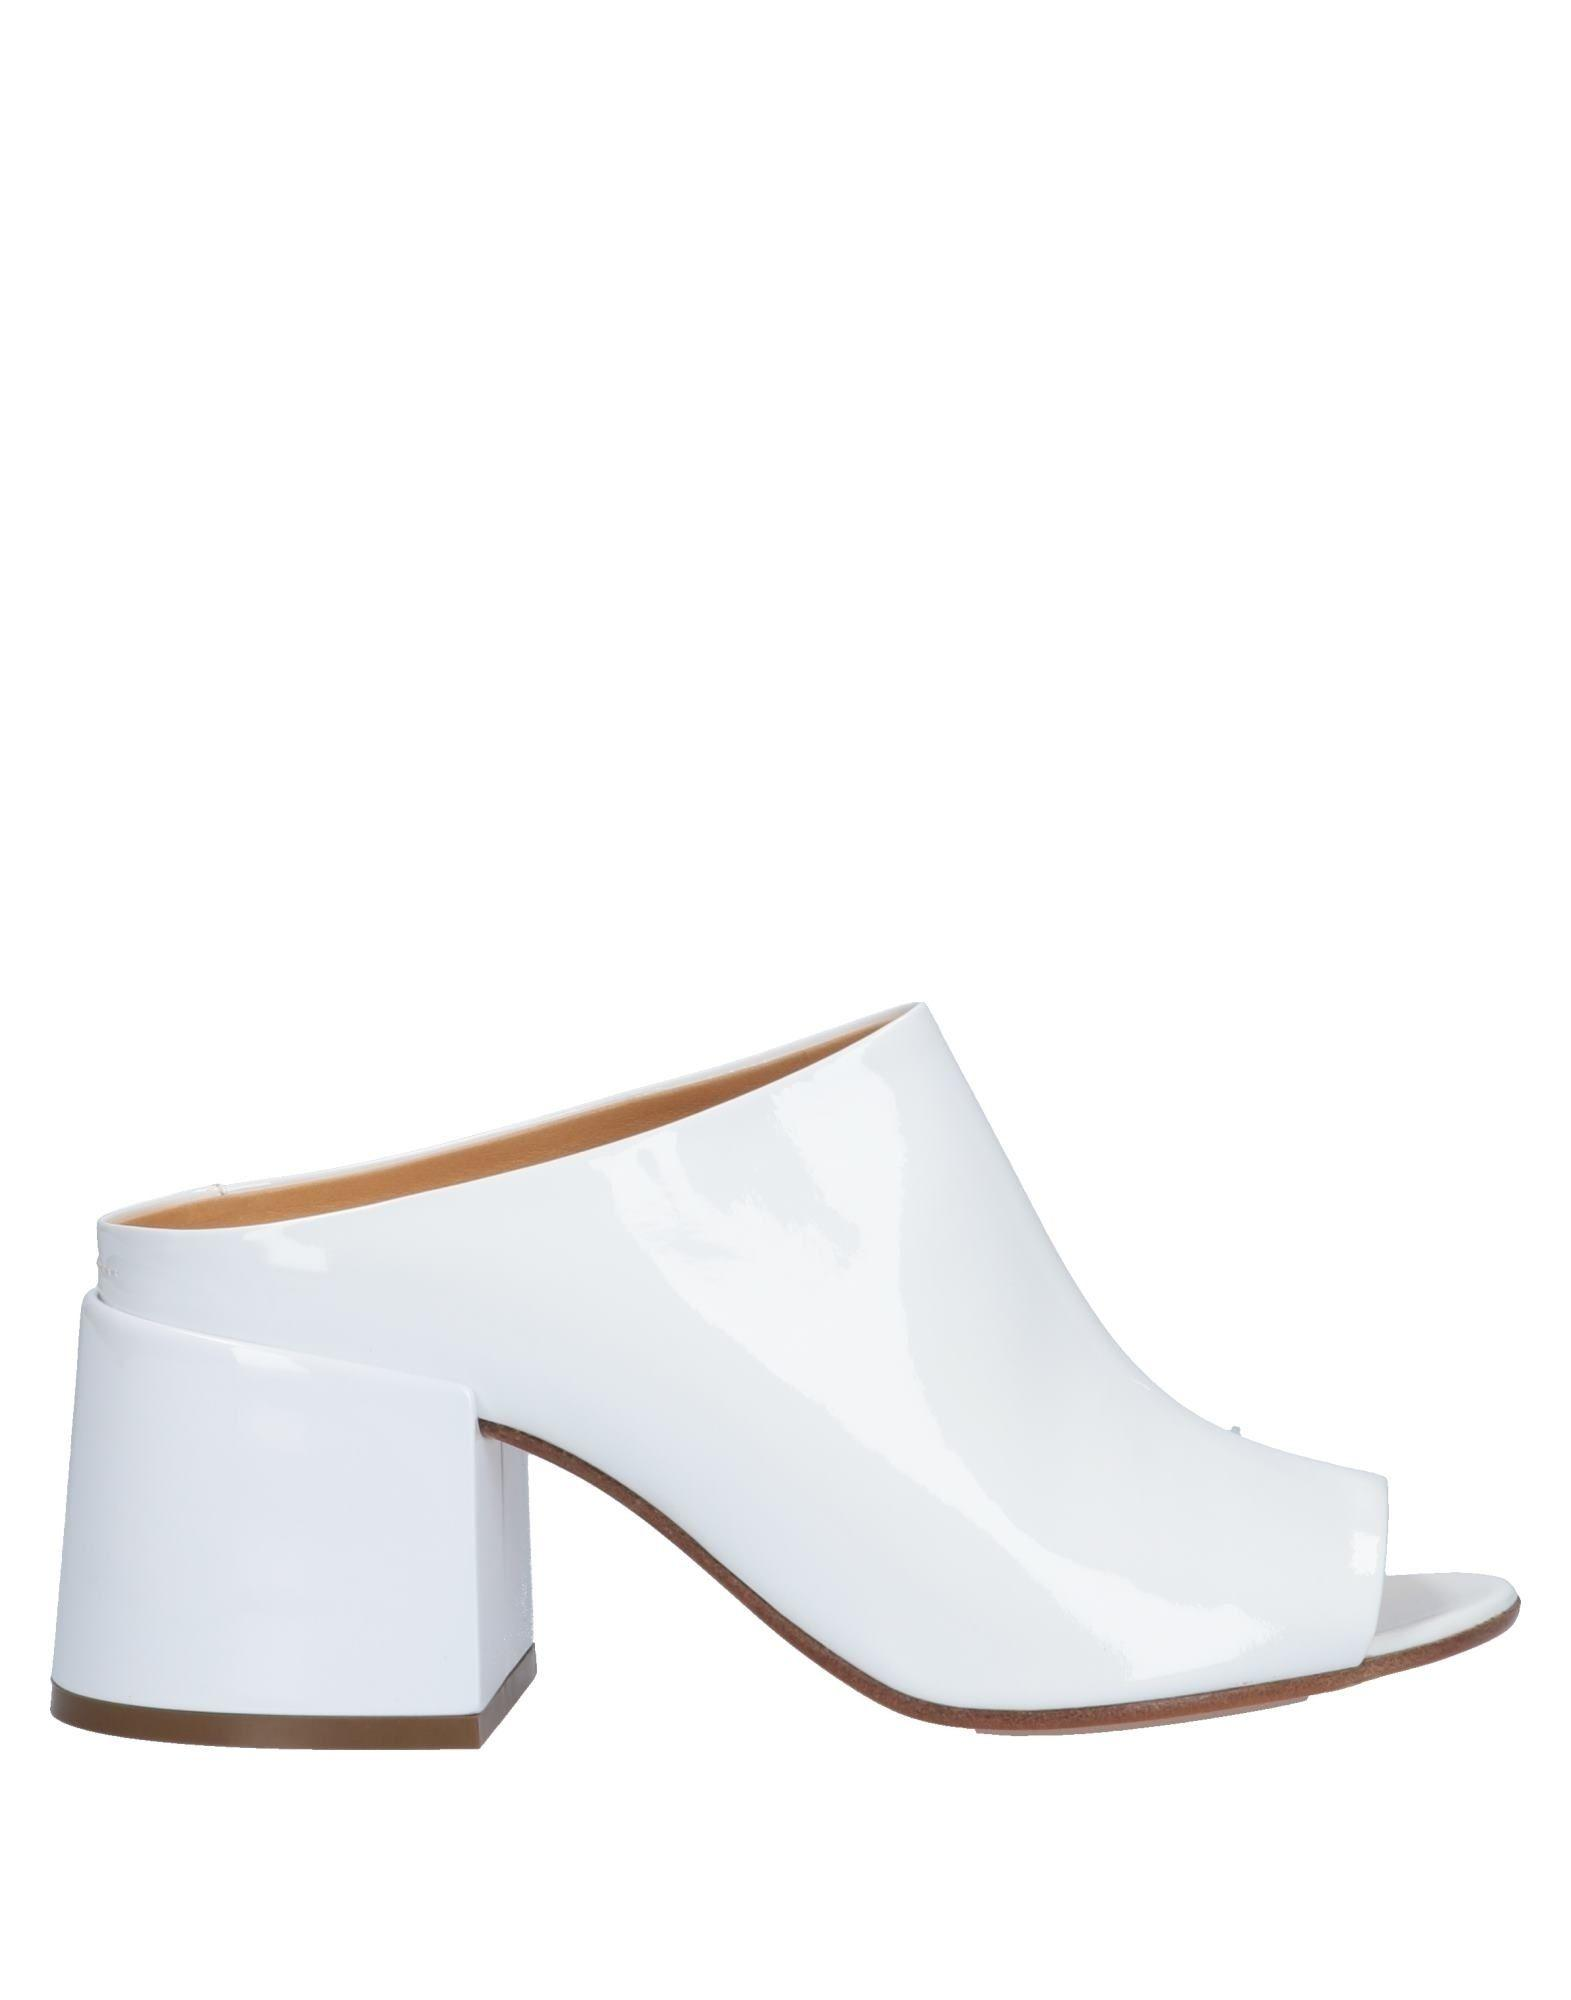 a8abc01581c5 Lyst - MM6 by Maison Martin Margiela Sandals in White